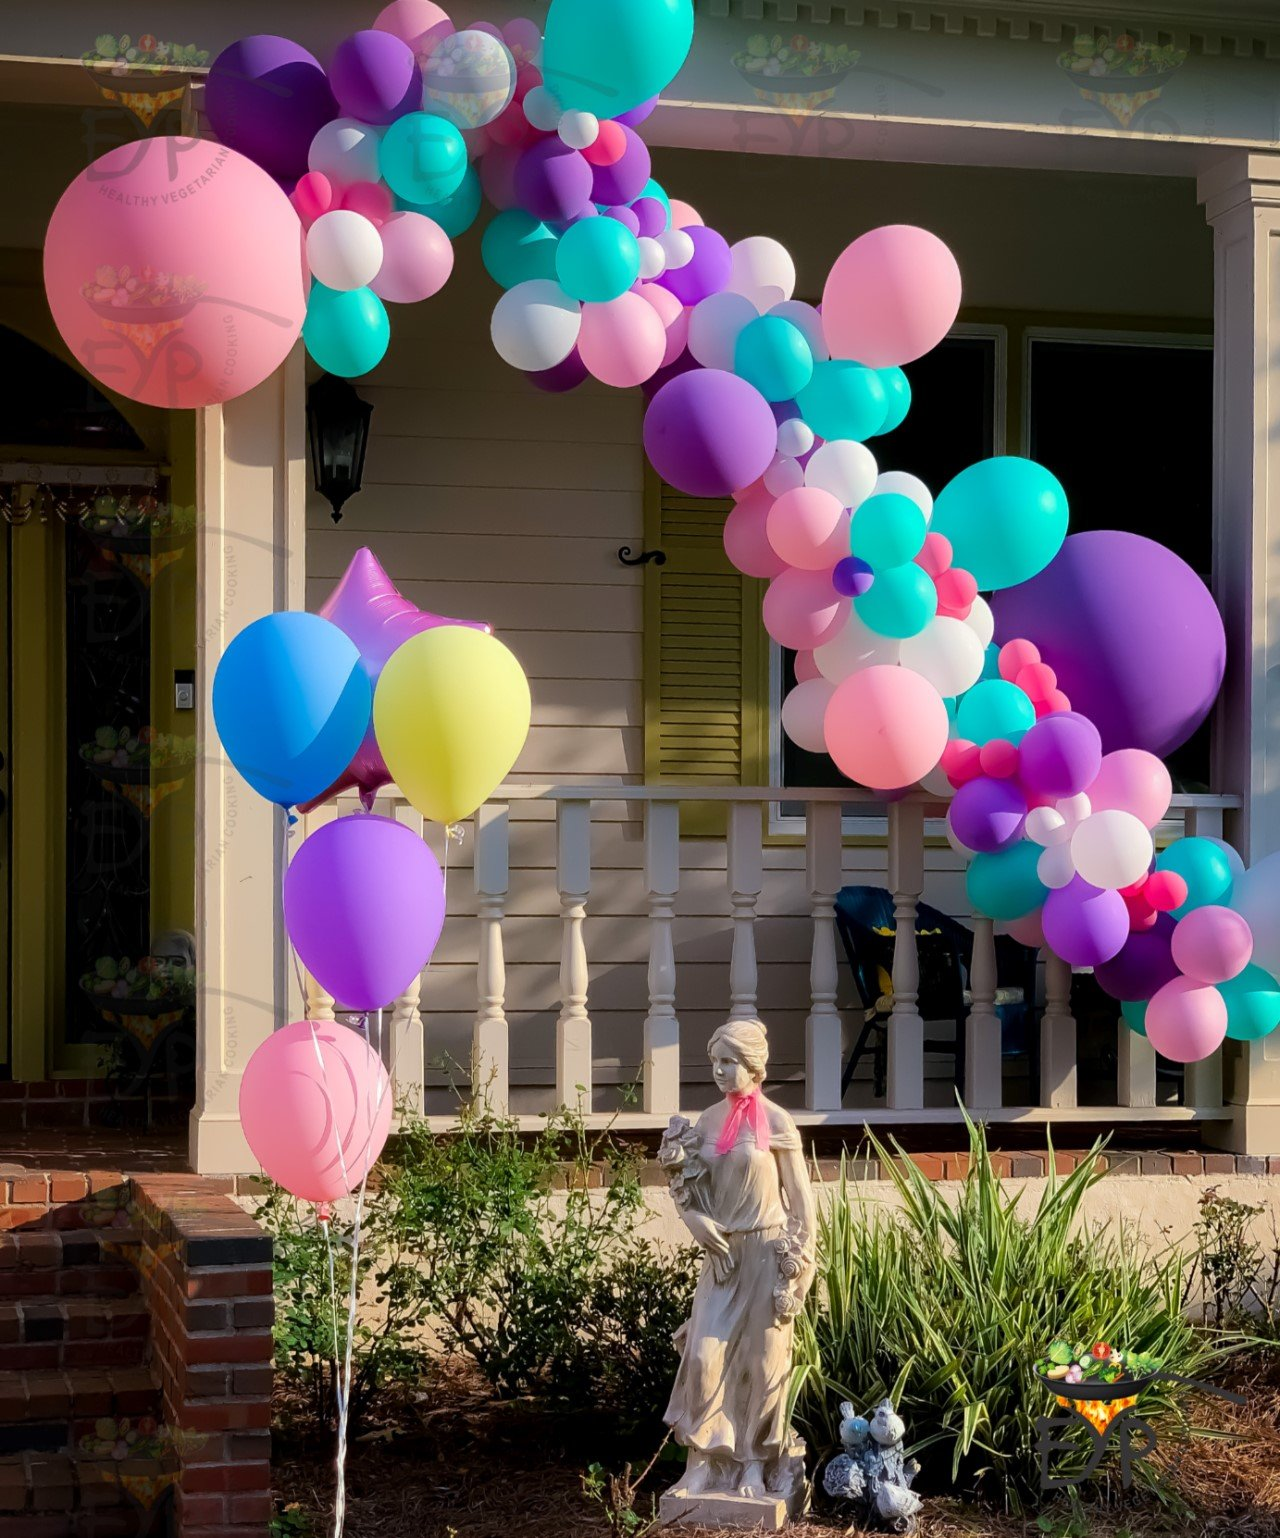 Baloon Decorations for Outdoor Birthday Party